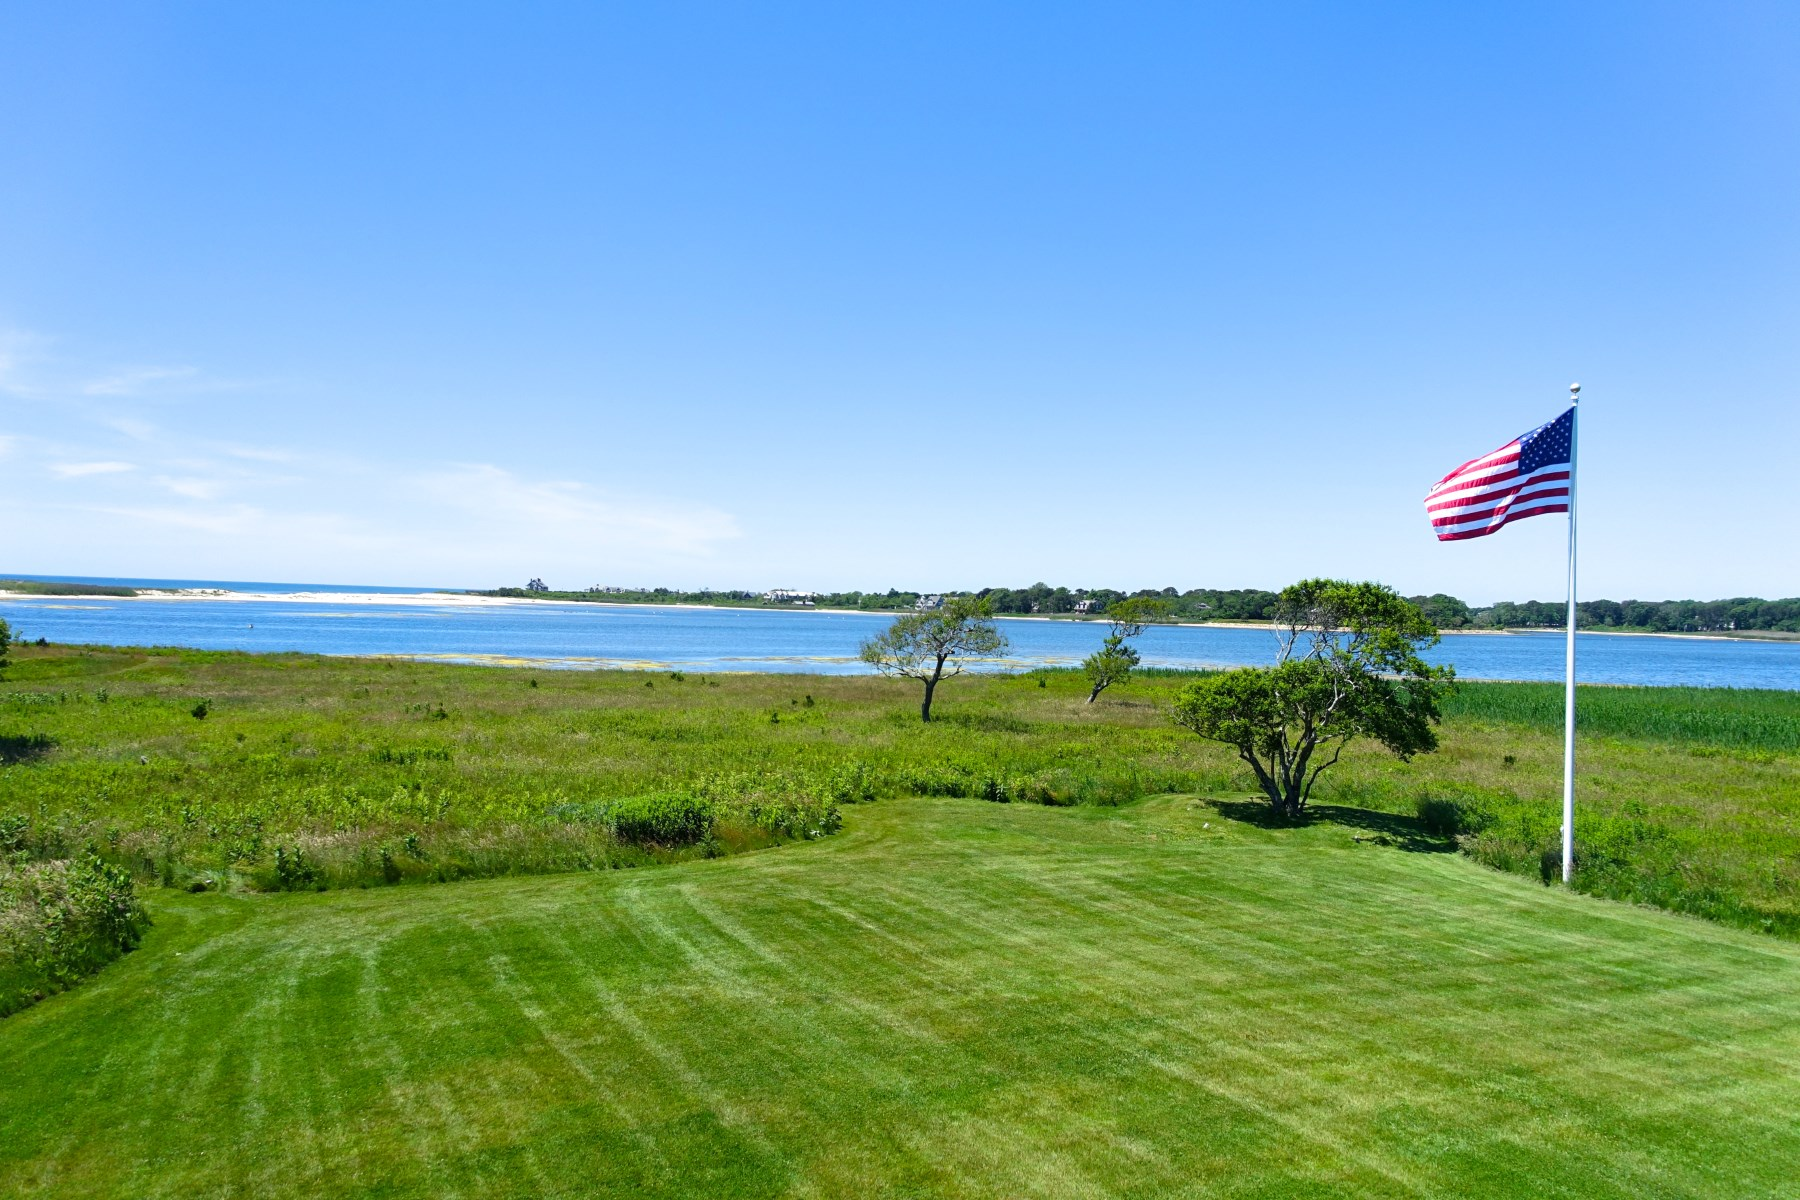 Tek Ailelik Ev için Satış at 7.1 Acres On Prestigious Pond 19 & 23 Chauncey Close East Hampton Village, East Hampton, New York, 11937 Amerika Birleşik Devletleri